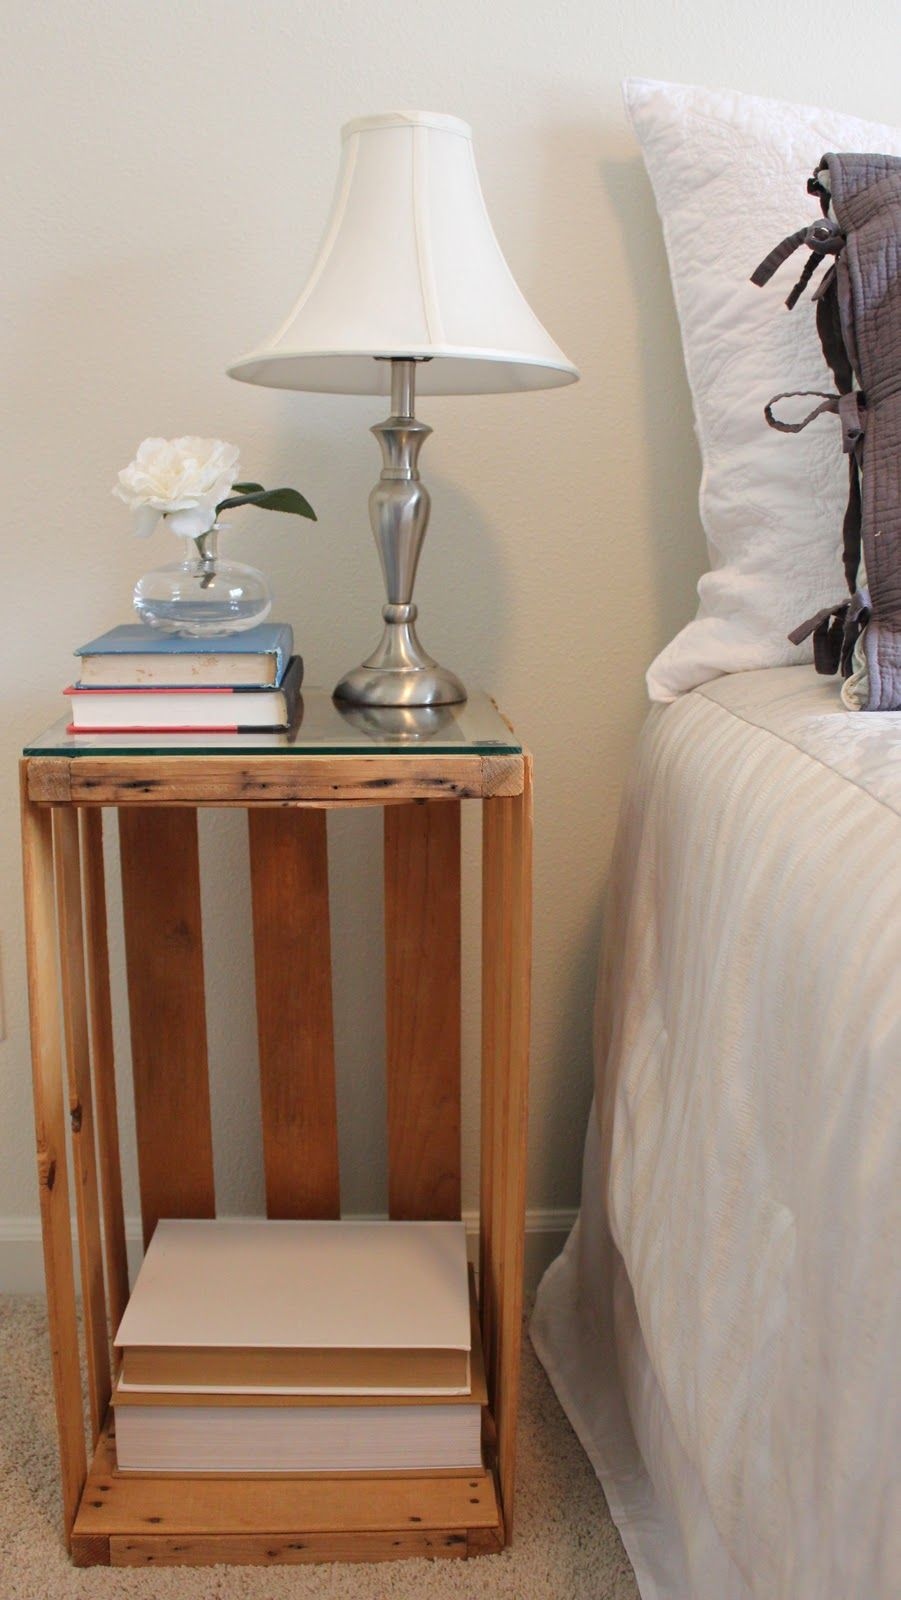 Bedside table decor pinterest - Diy Fruit Crate Turned Night Stand Bedside Table Loveee The Glass Cut To